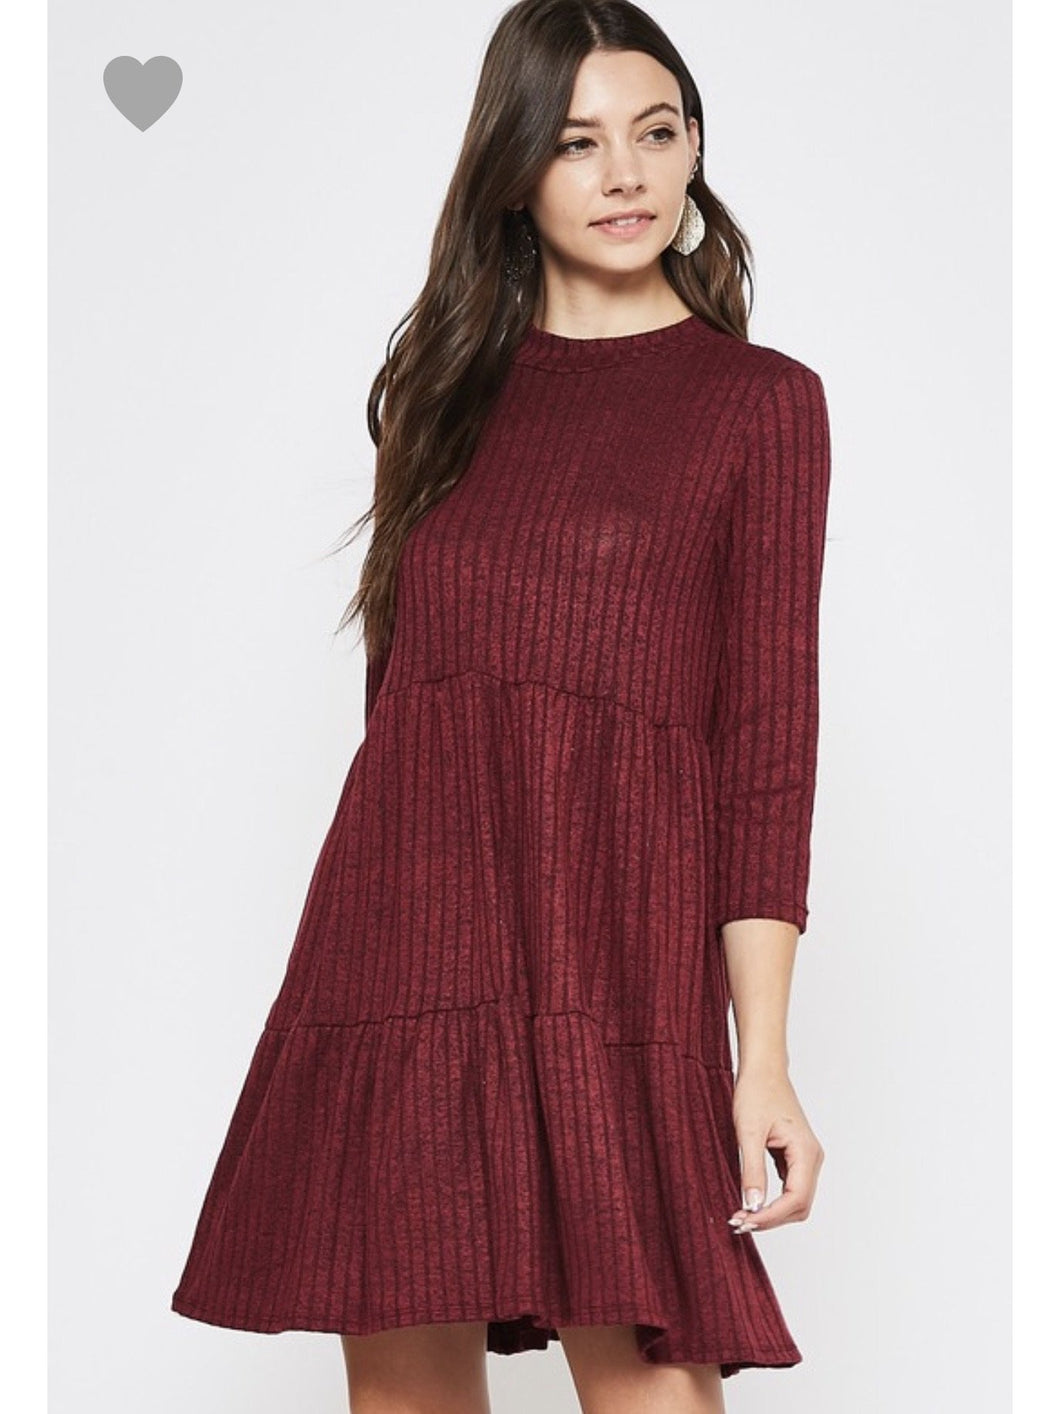 THE SUSIE BABYDOLL DRESS - wine